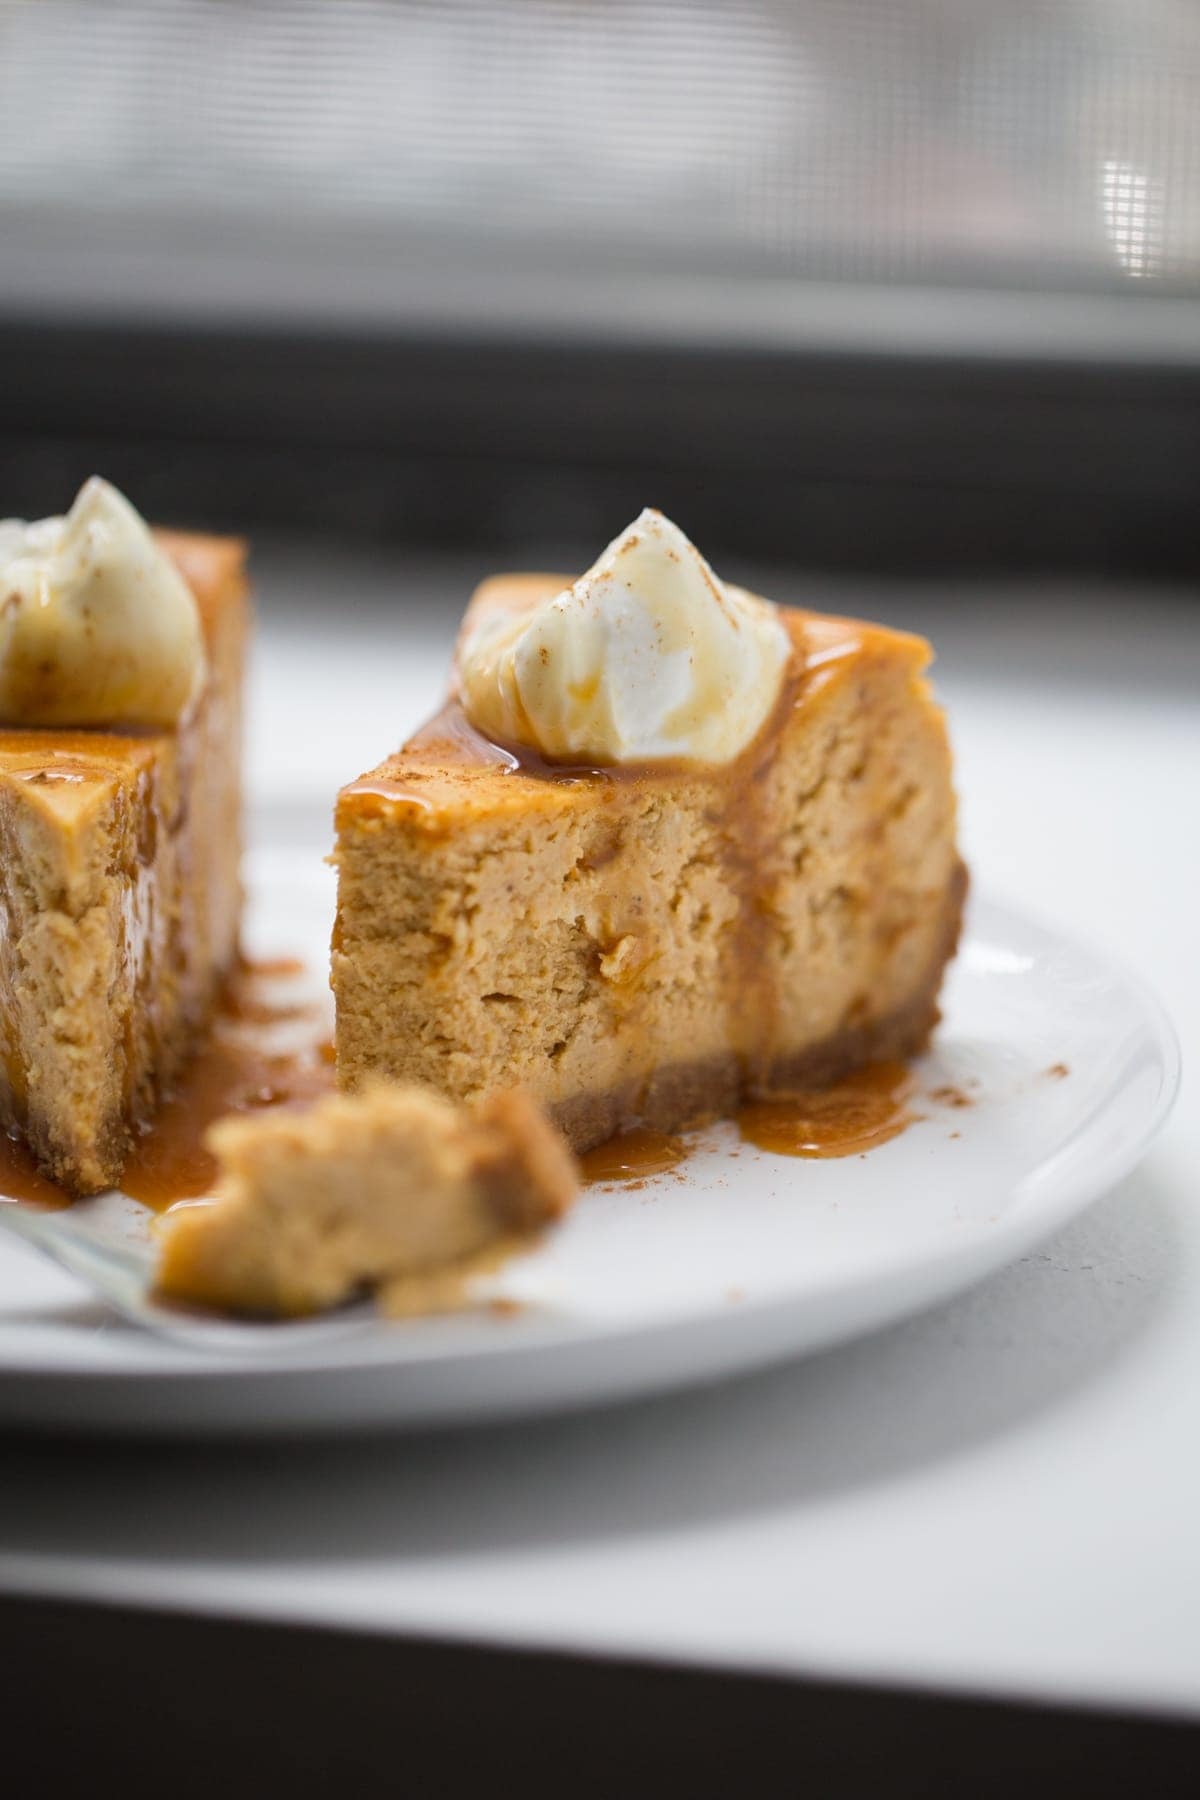 pumpkin cheesecake with piece on fork